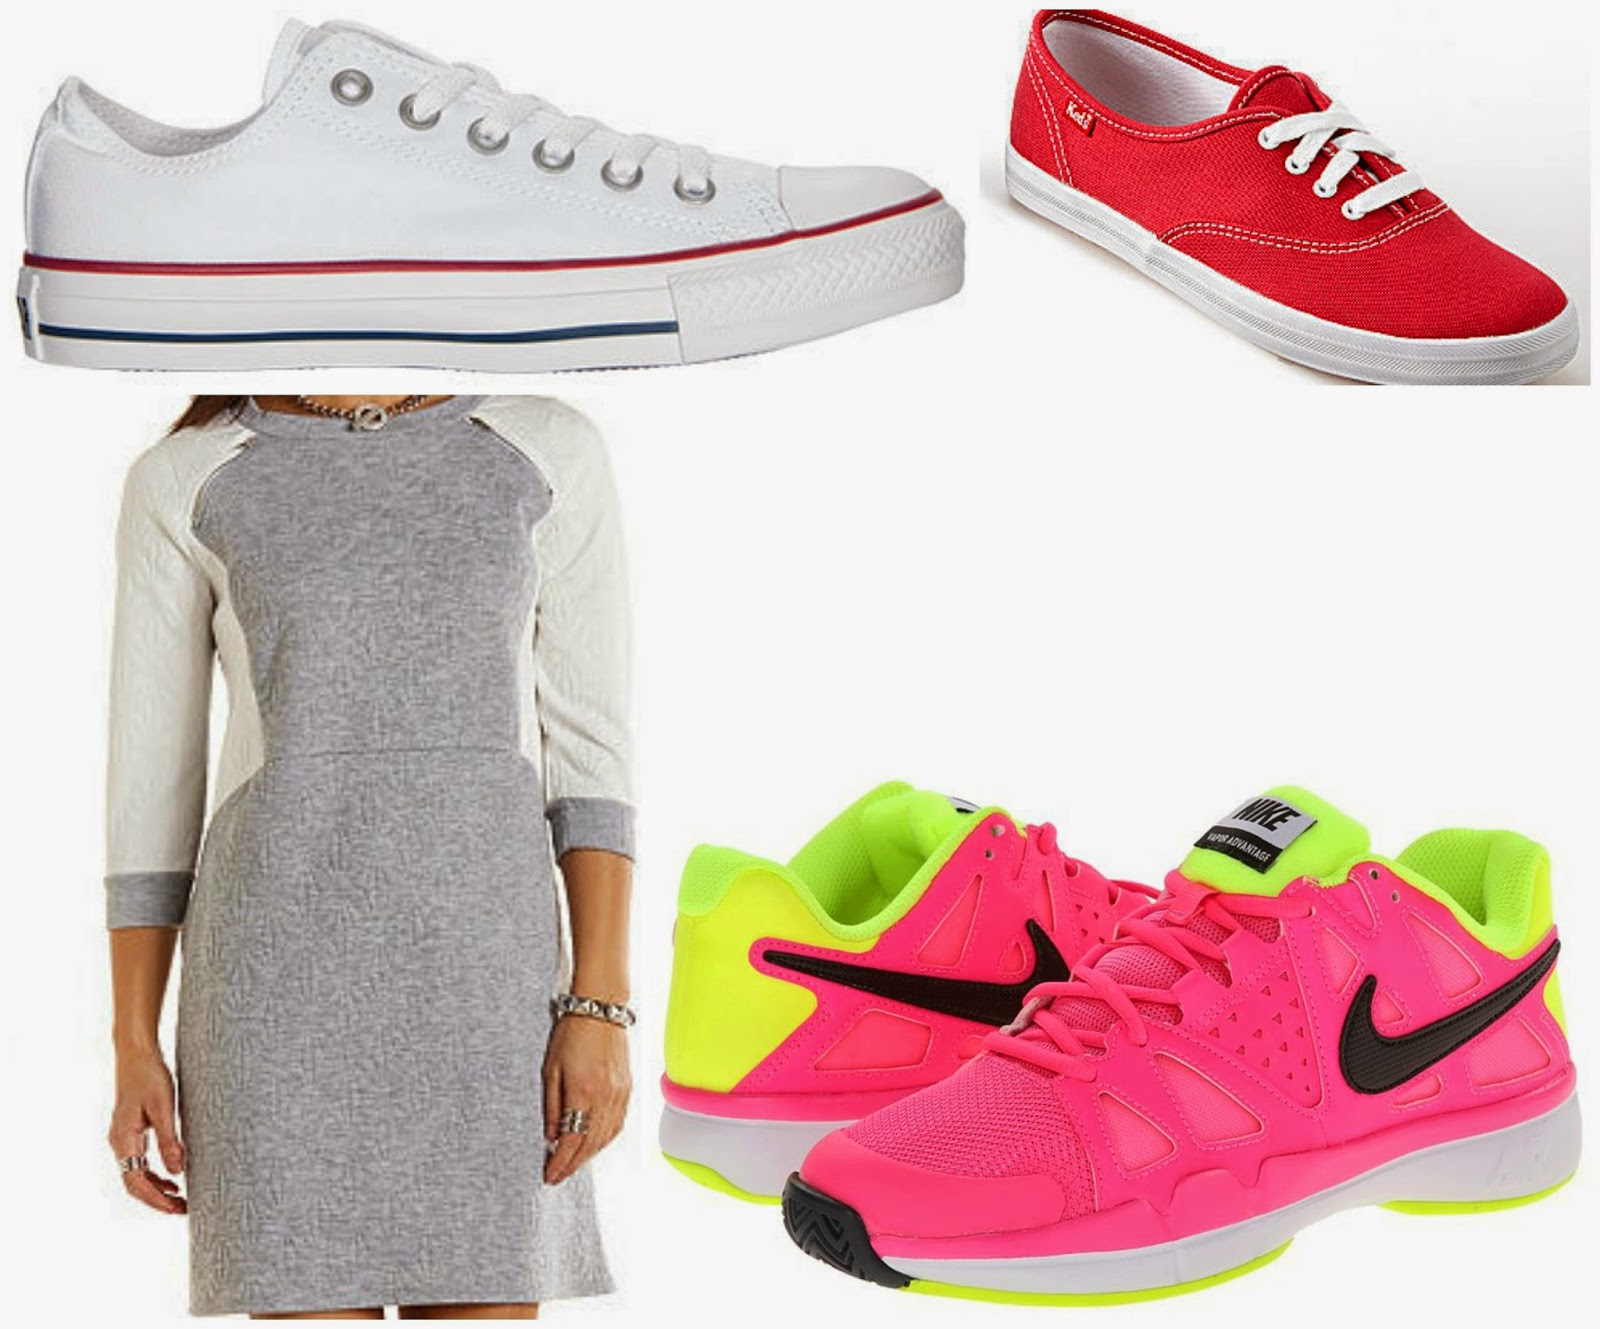 keds converse sweatshirt dress neon tennis shoes